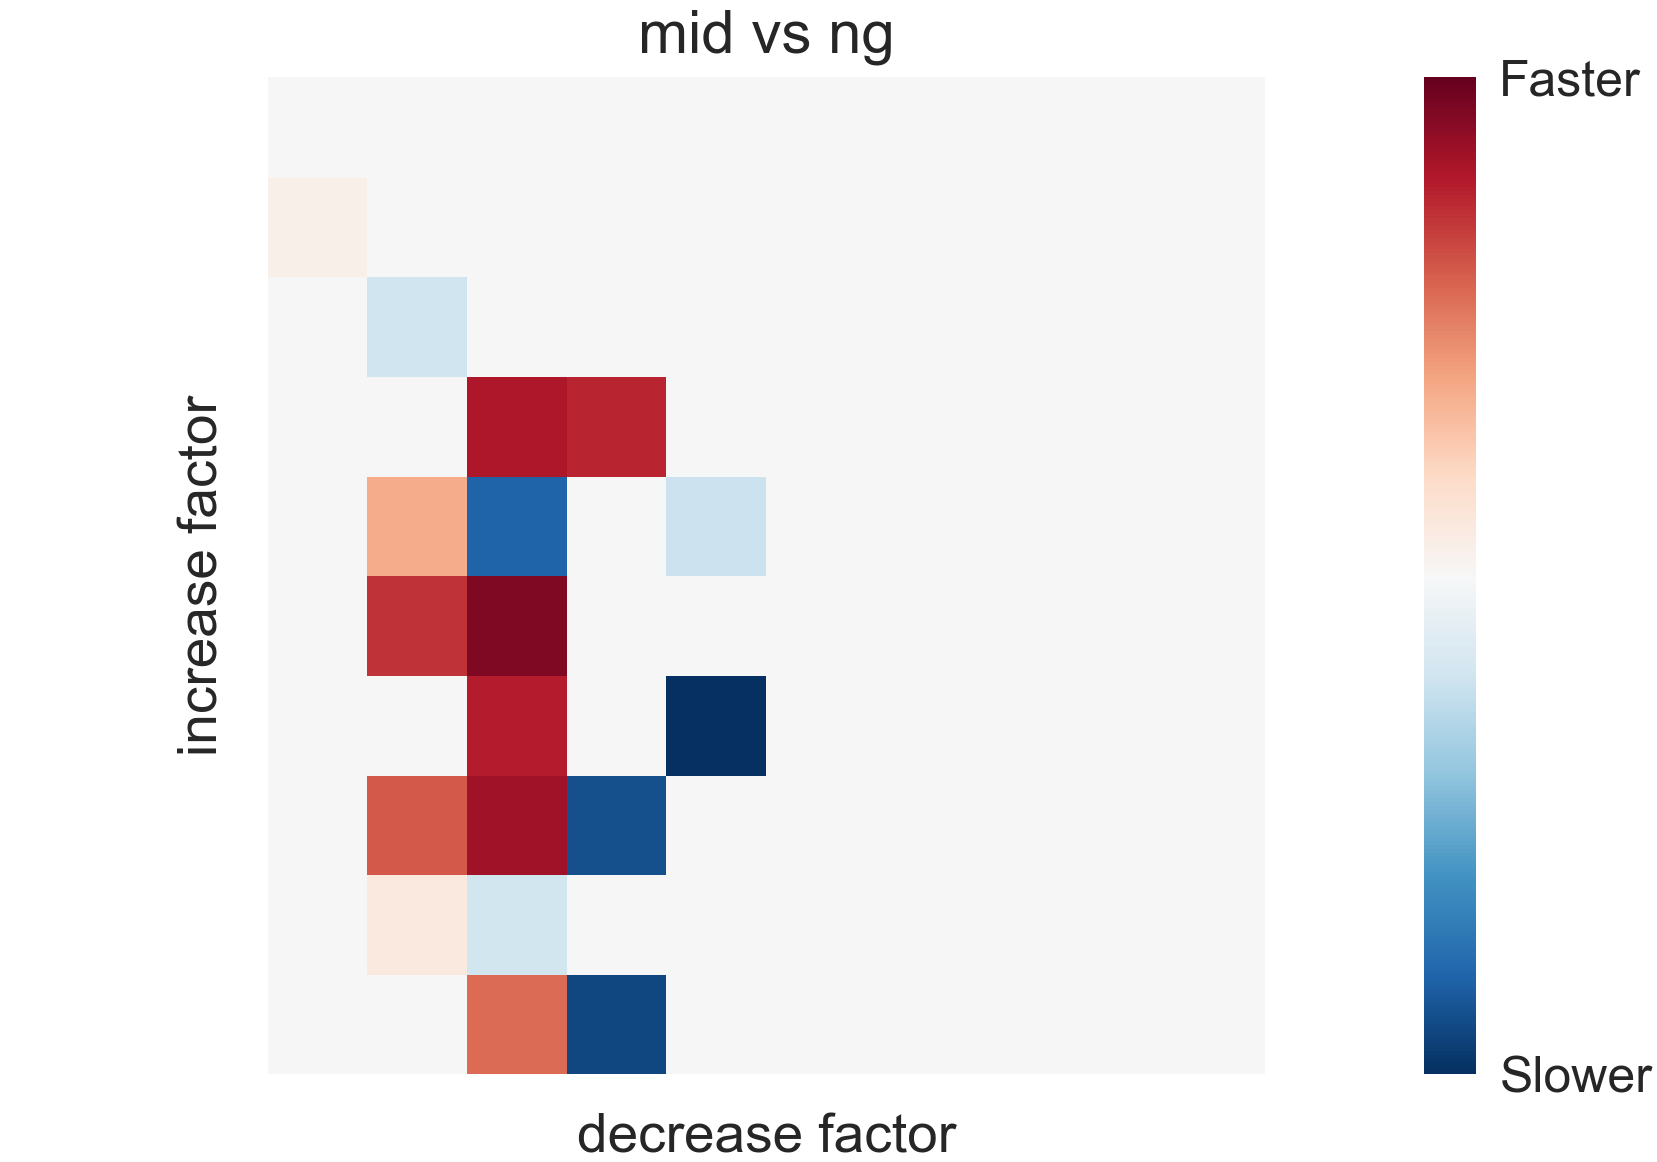 Robustness to hyper-parameters. Each cell corresponds to a hyper-parameter choice, and the color represents how much faster our method is compared to natural gradient in achieving